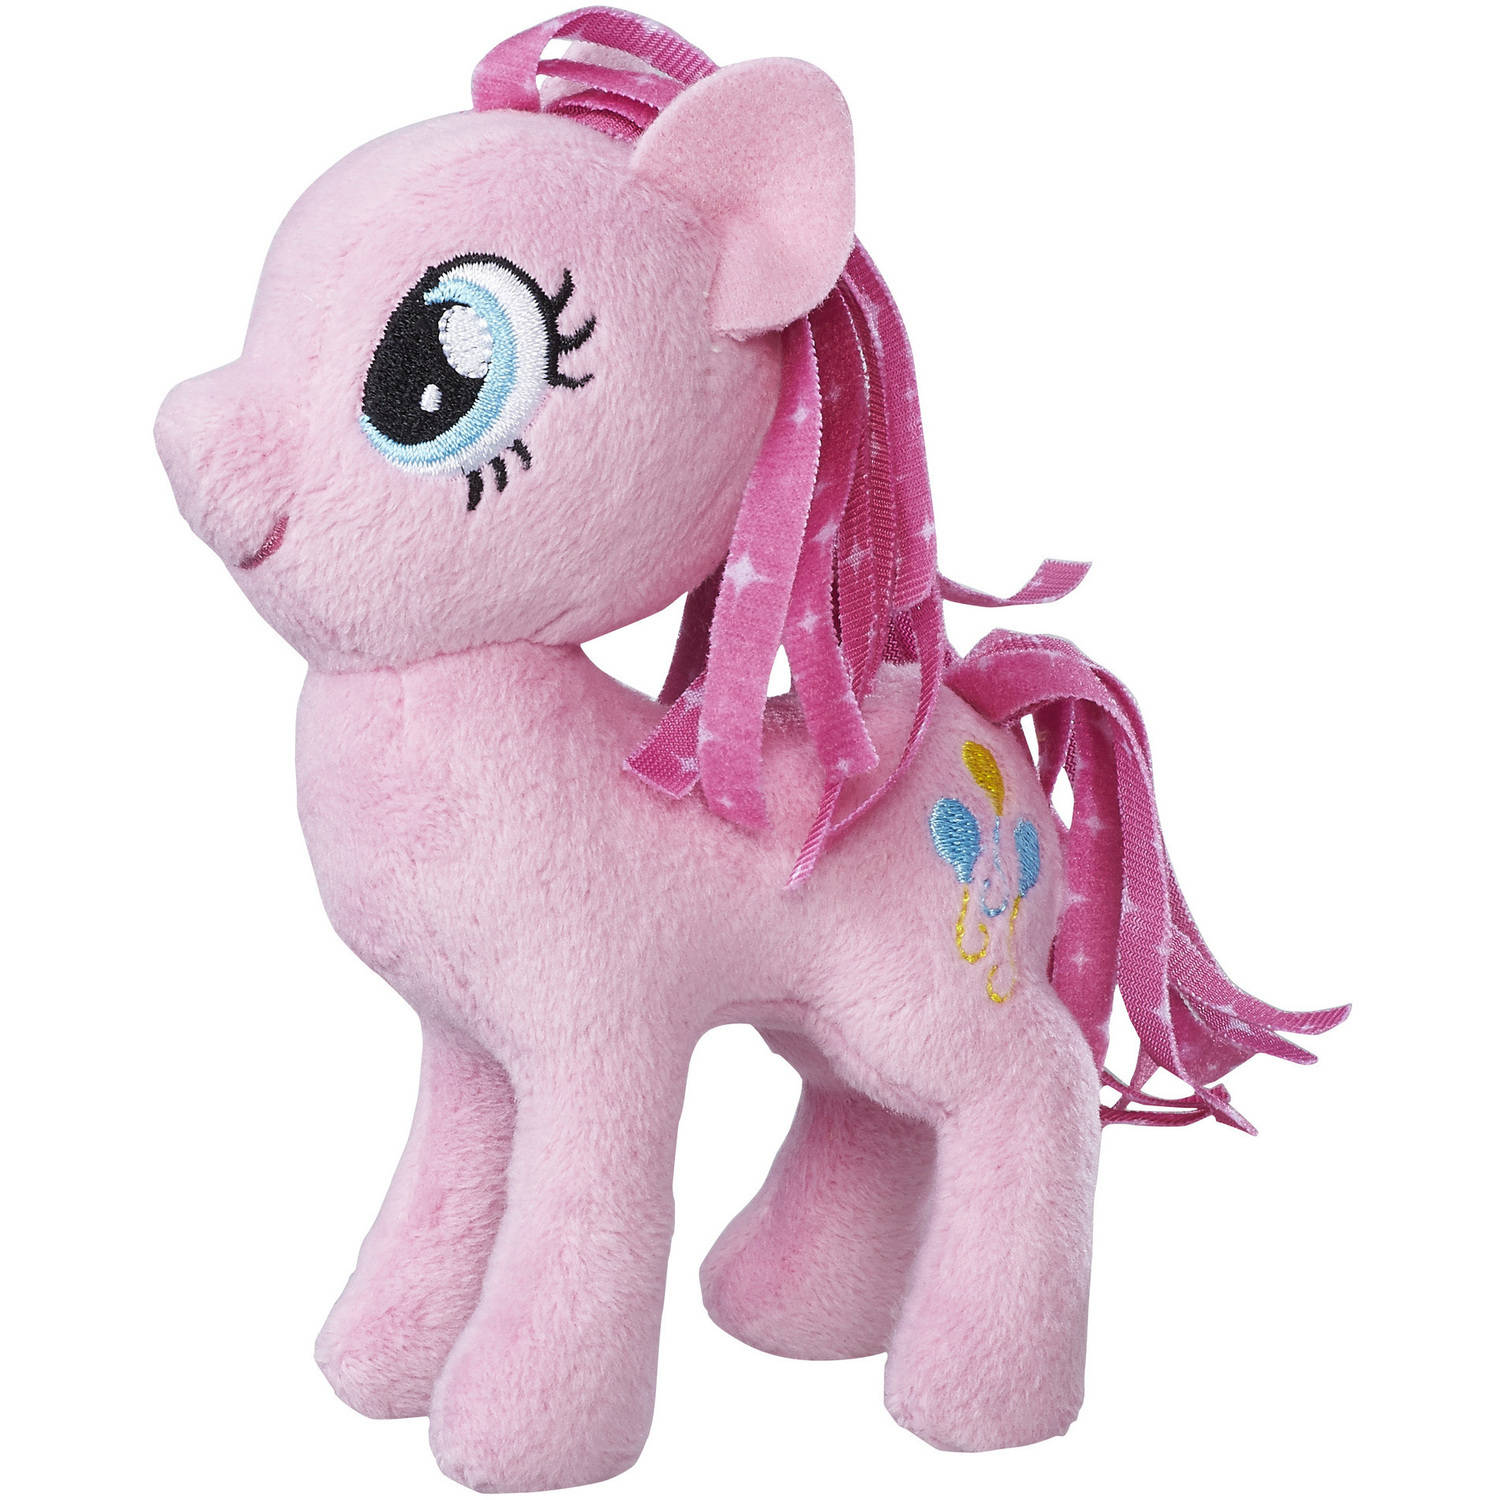 My Little Pony Friendship is Magic Pinkie Pie Small Plush by Hasbro